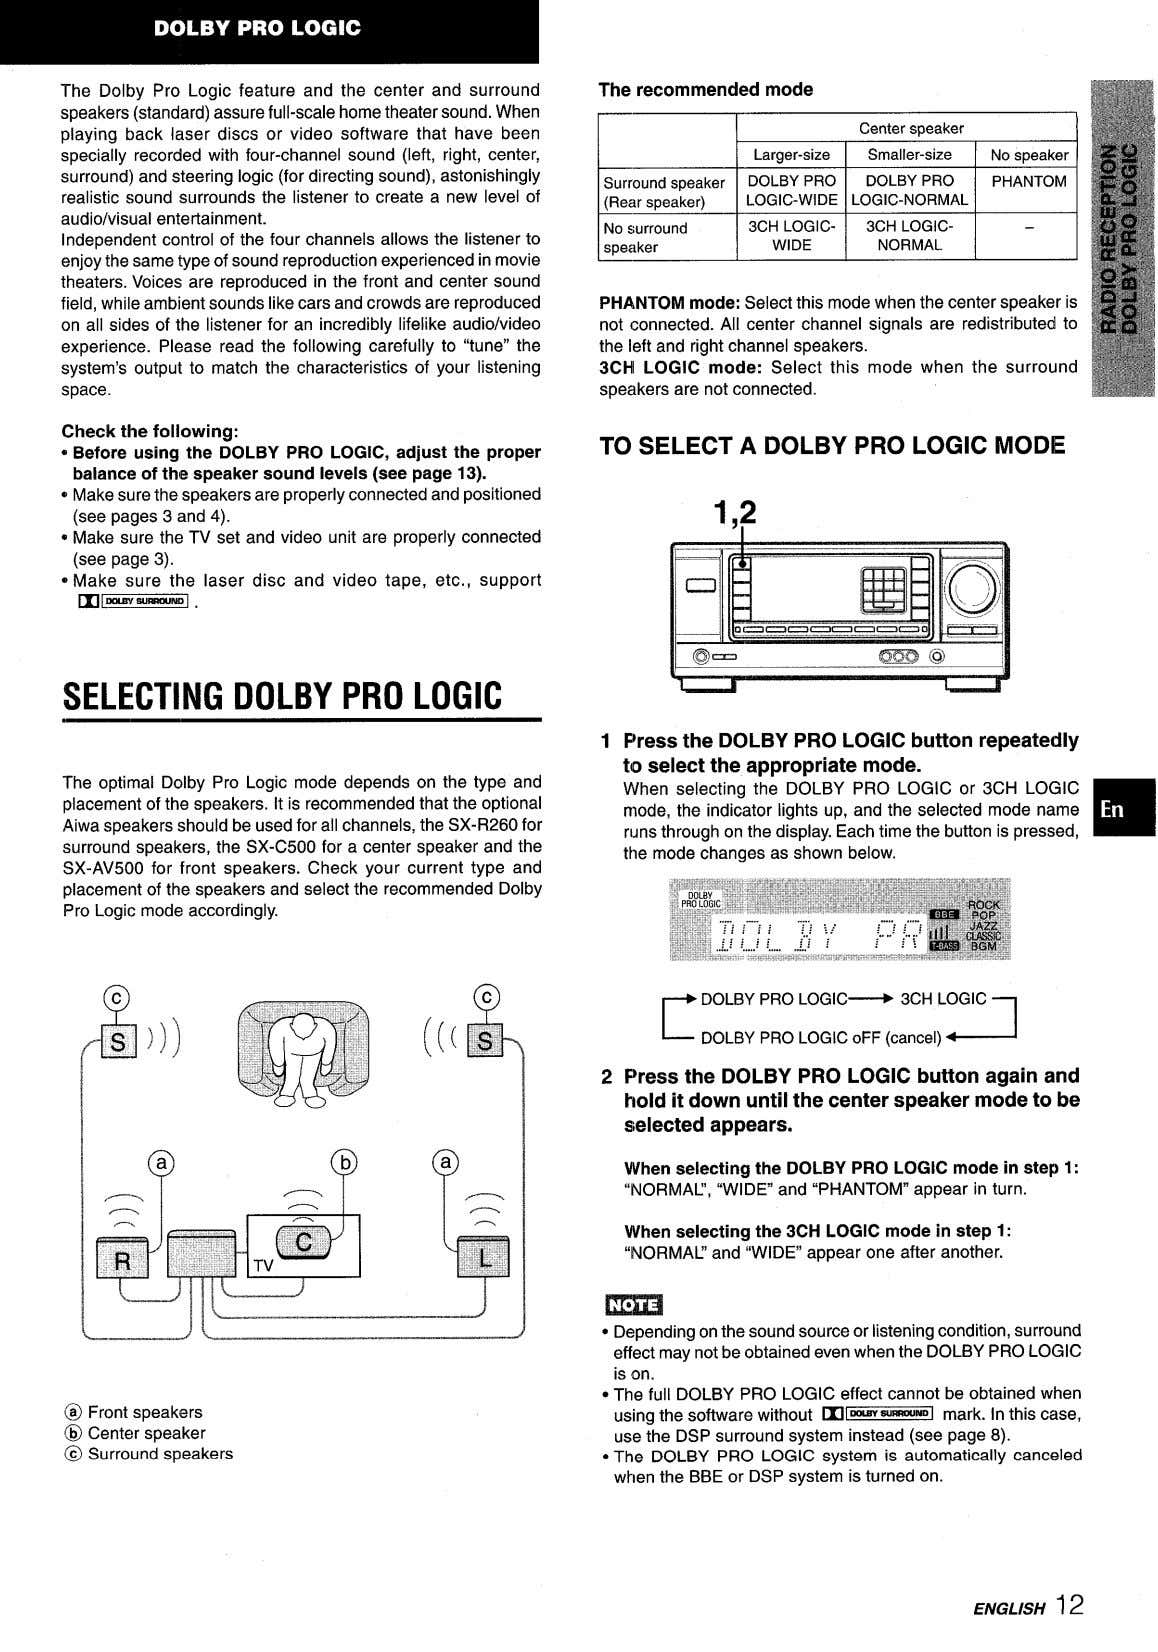 The Dolby Pro Logic feature and the center and surround The recommended mode speakers (standard)